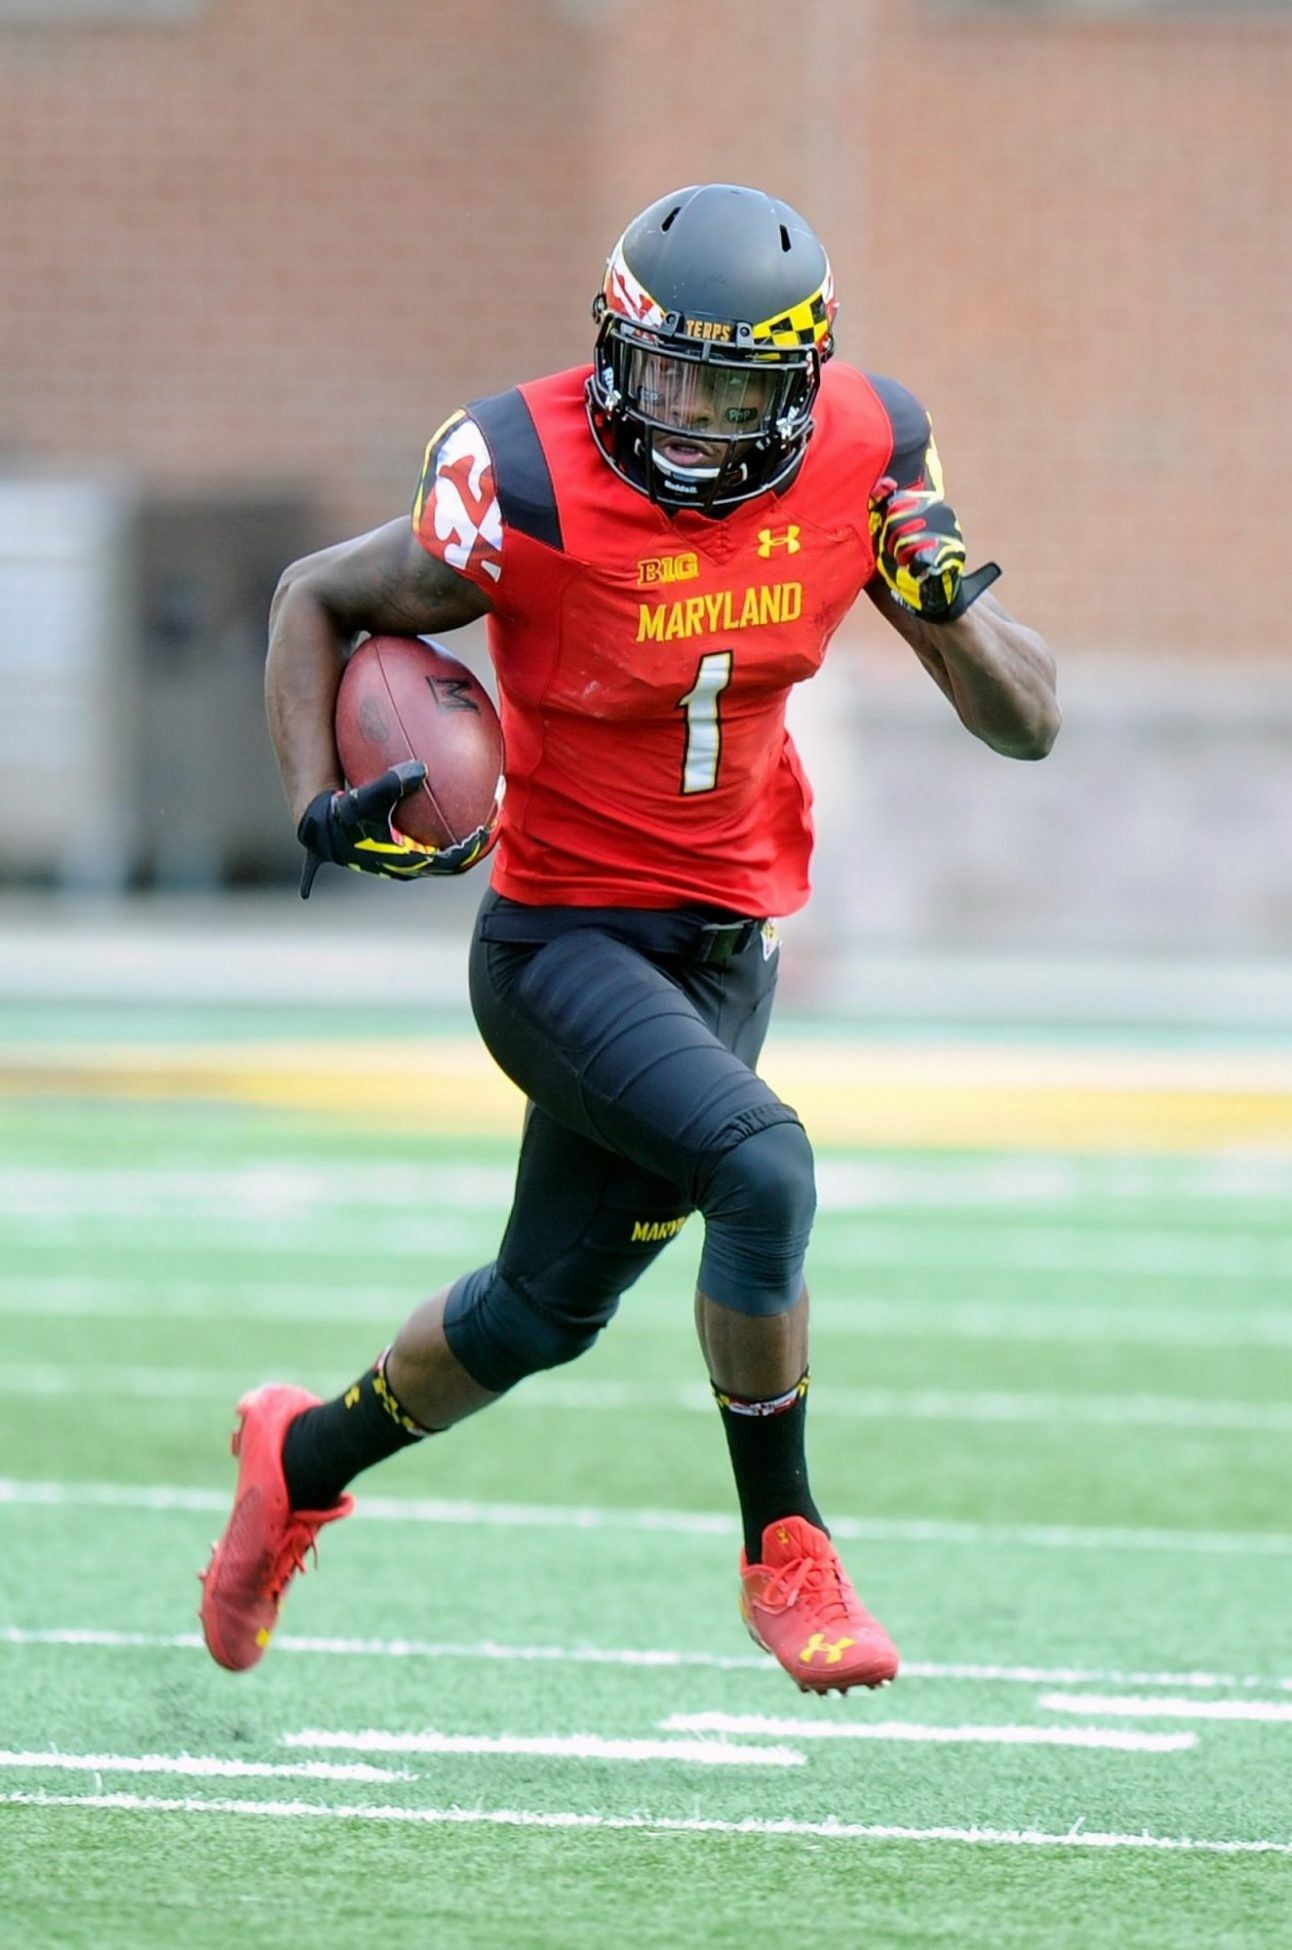 Stefon Diggs At Maryland Stefon Diggs College Football Nfl Players